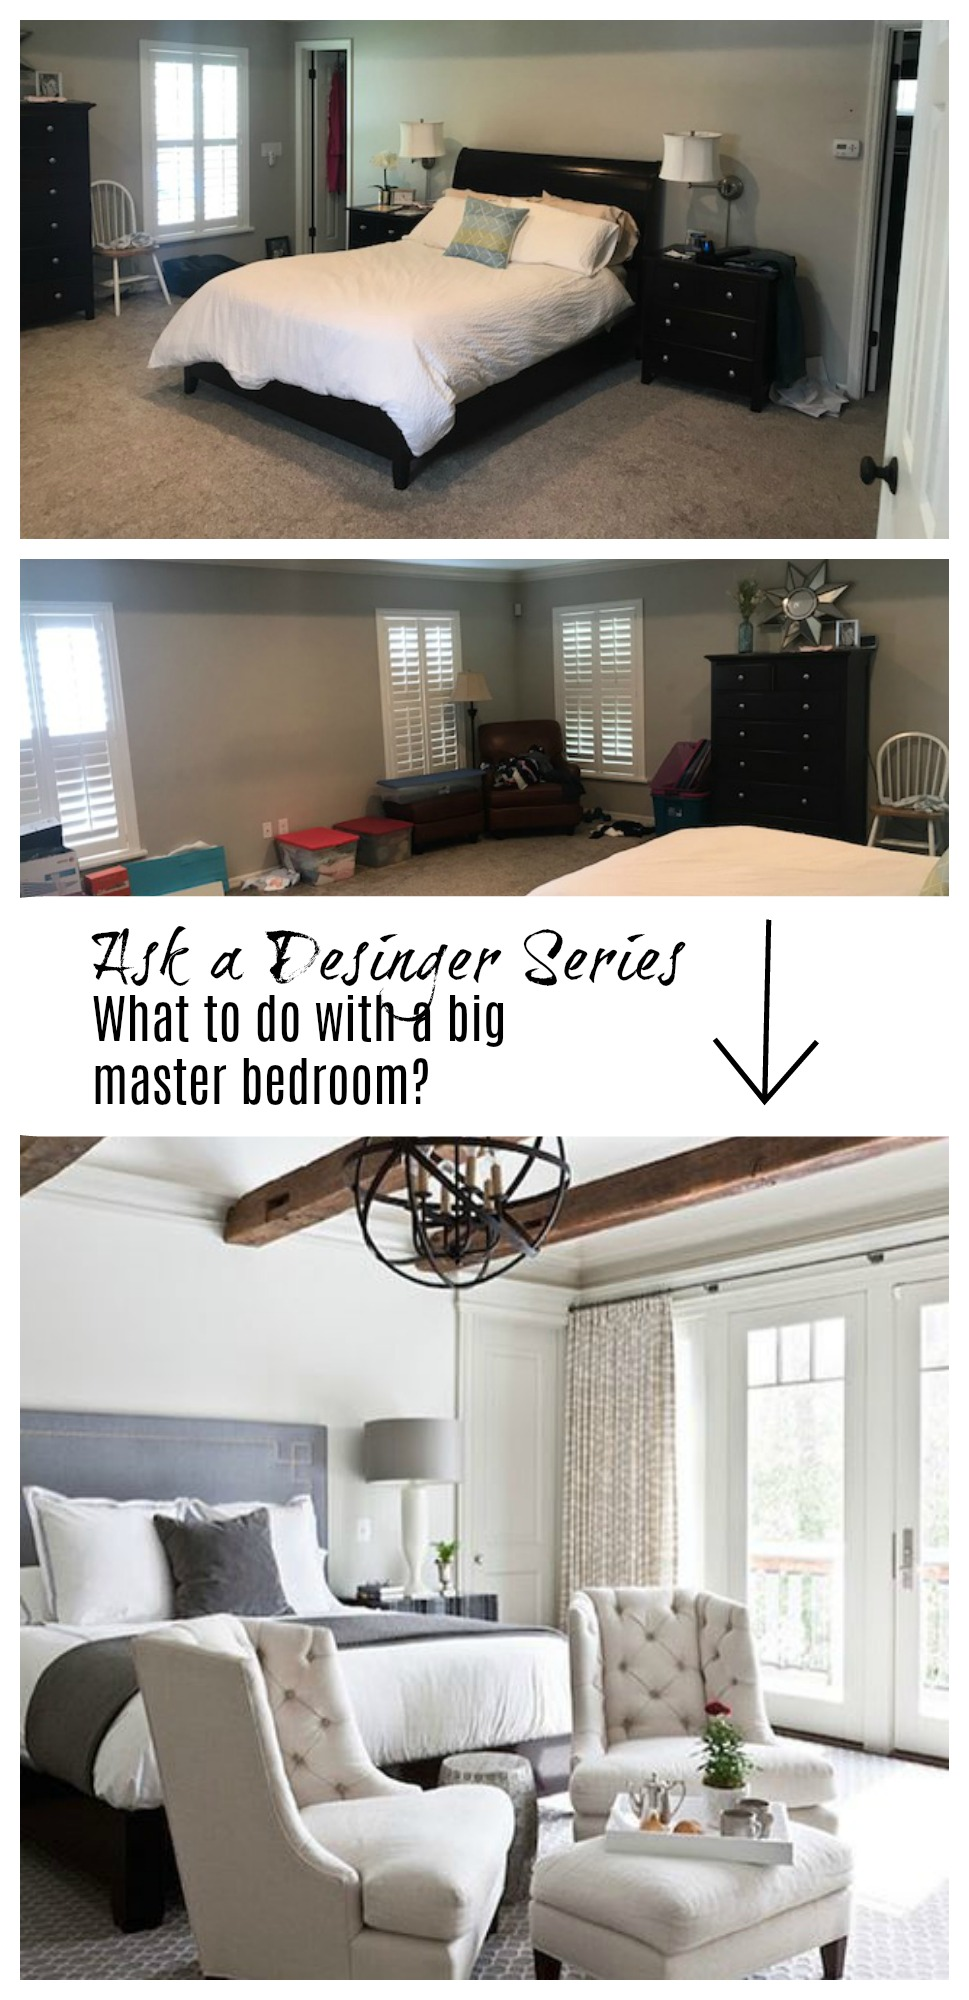 Amazing Ask A Desinger Series  Where To Start In A Large Master Bedroom?